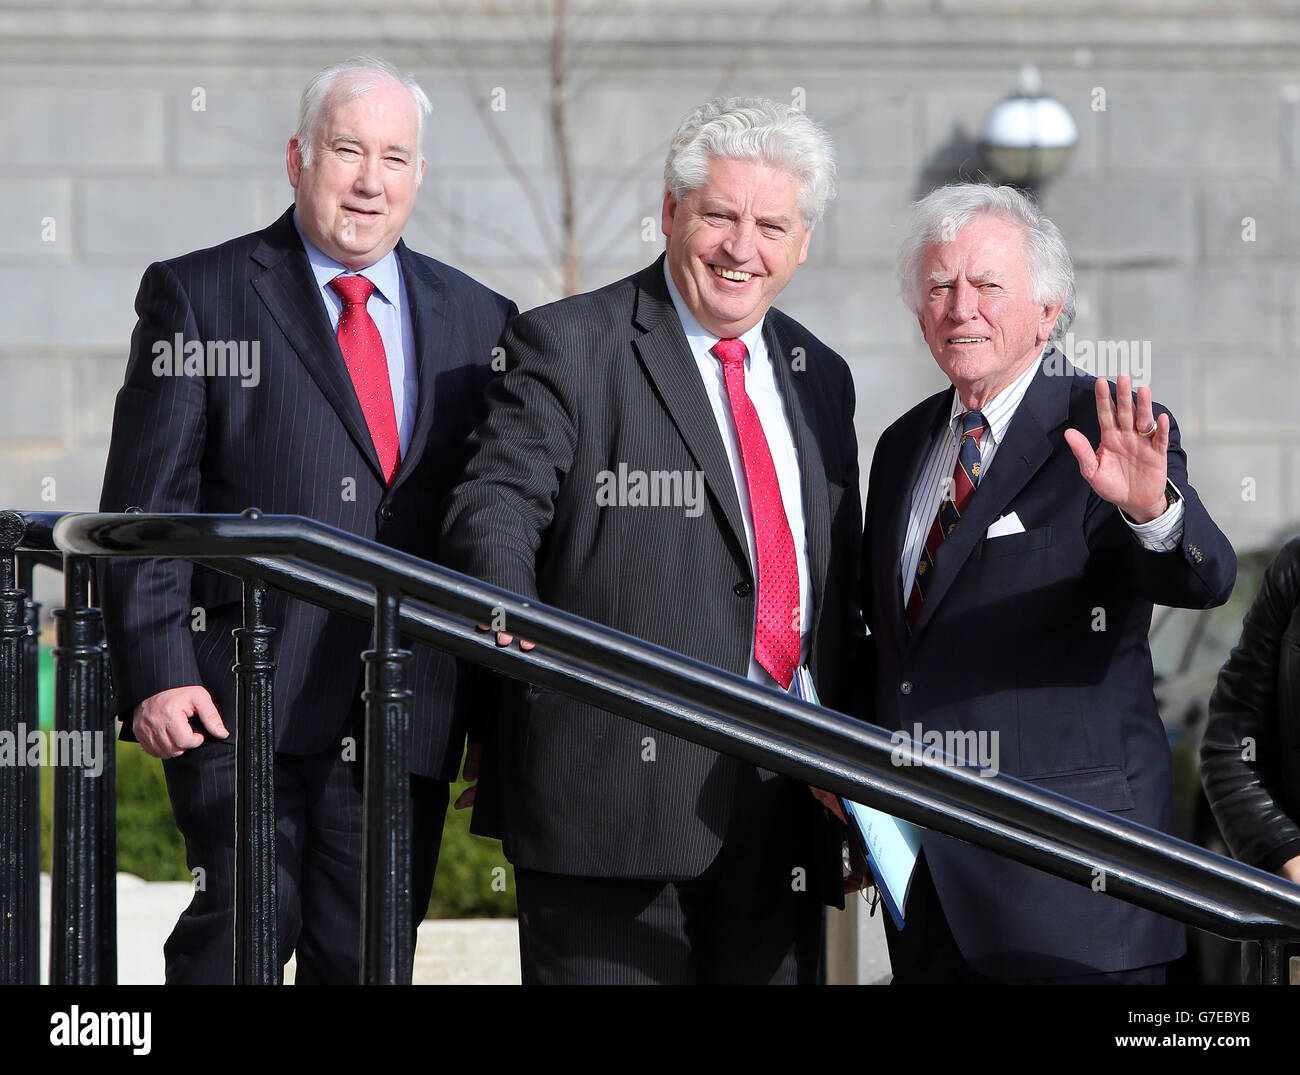 Gary Hart at Stormont - Stock Image